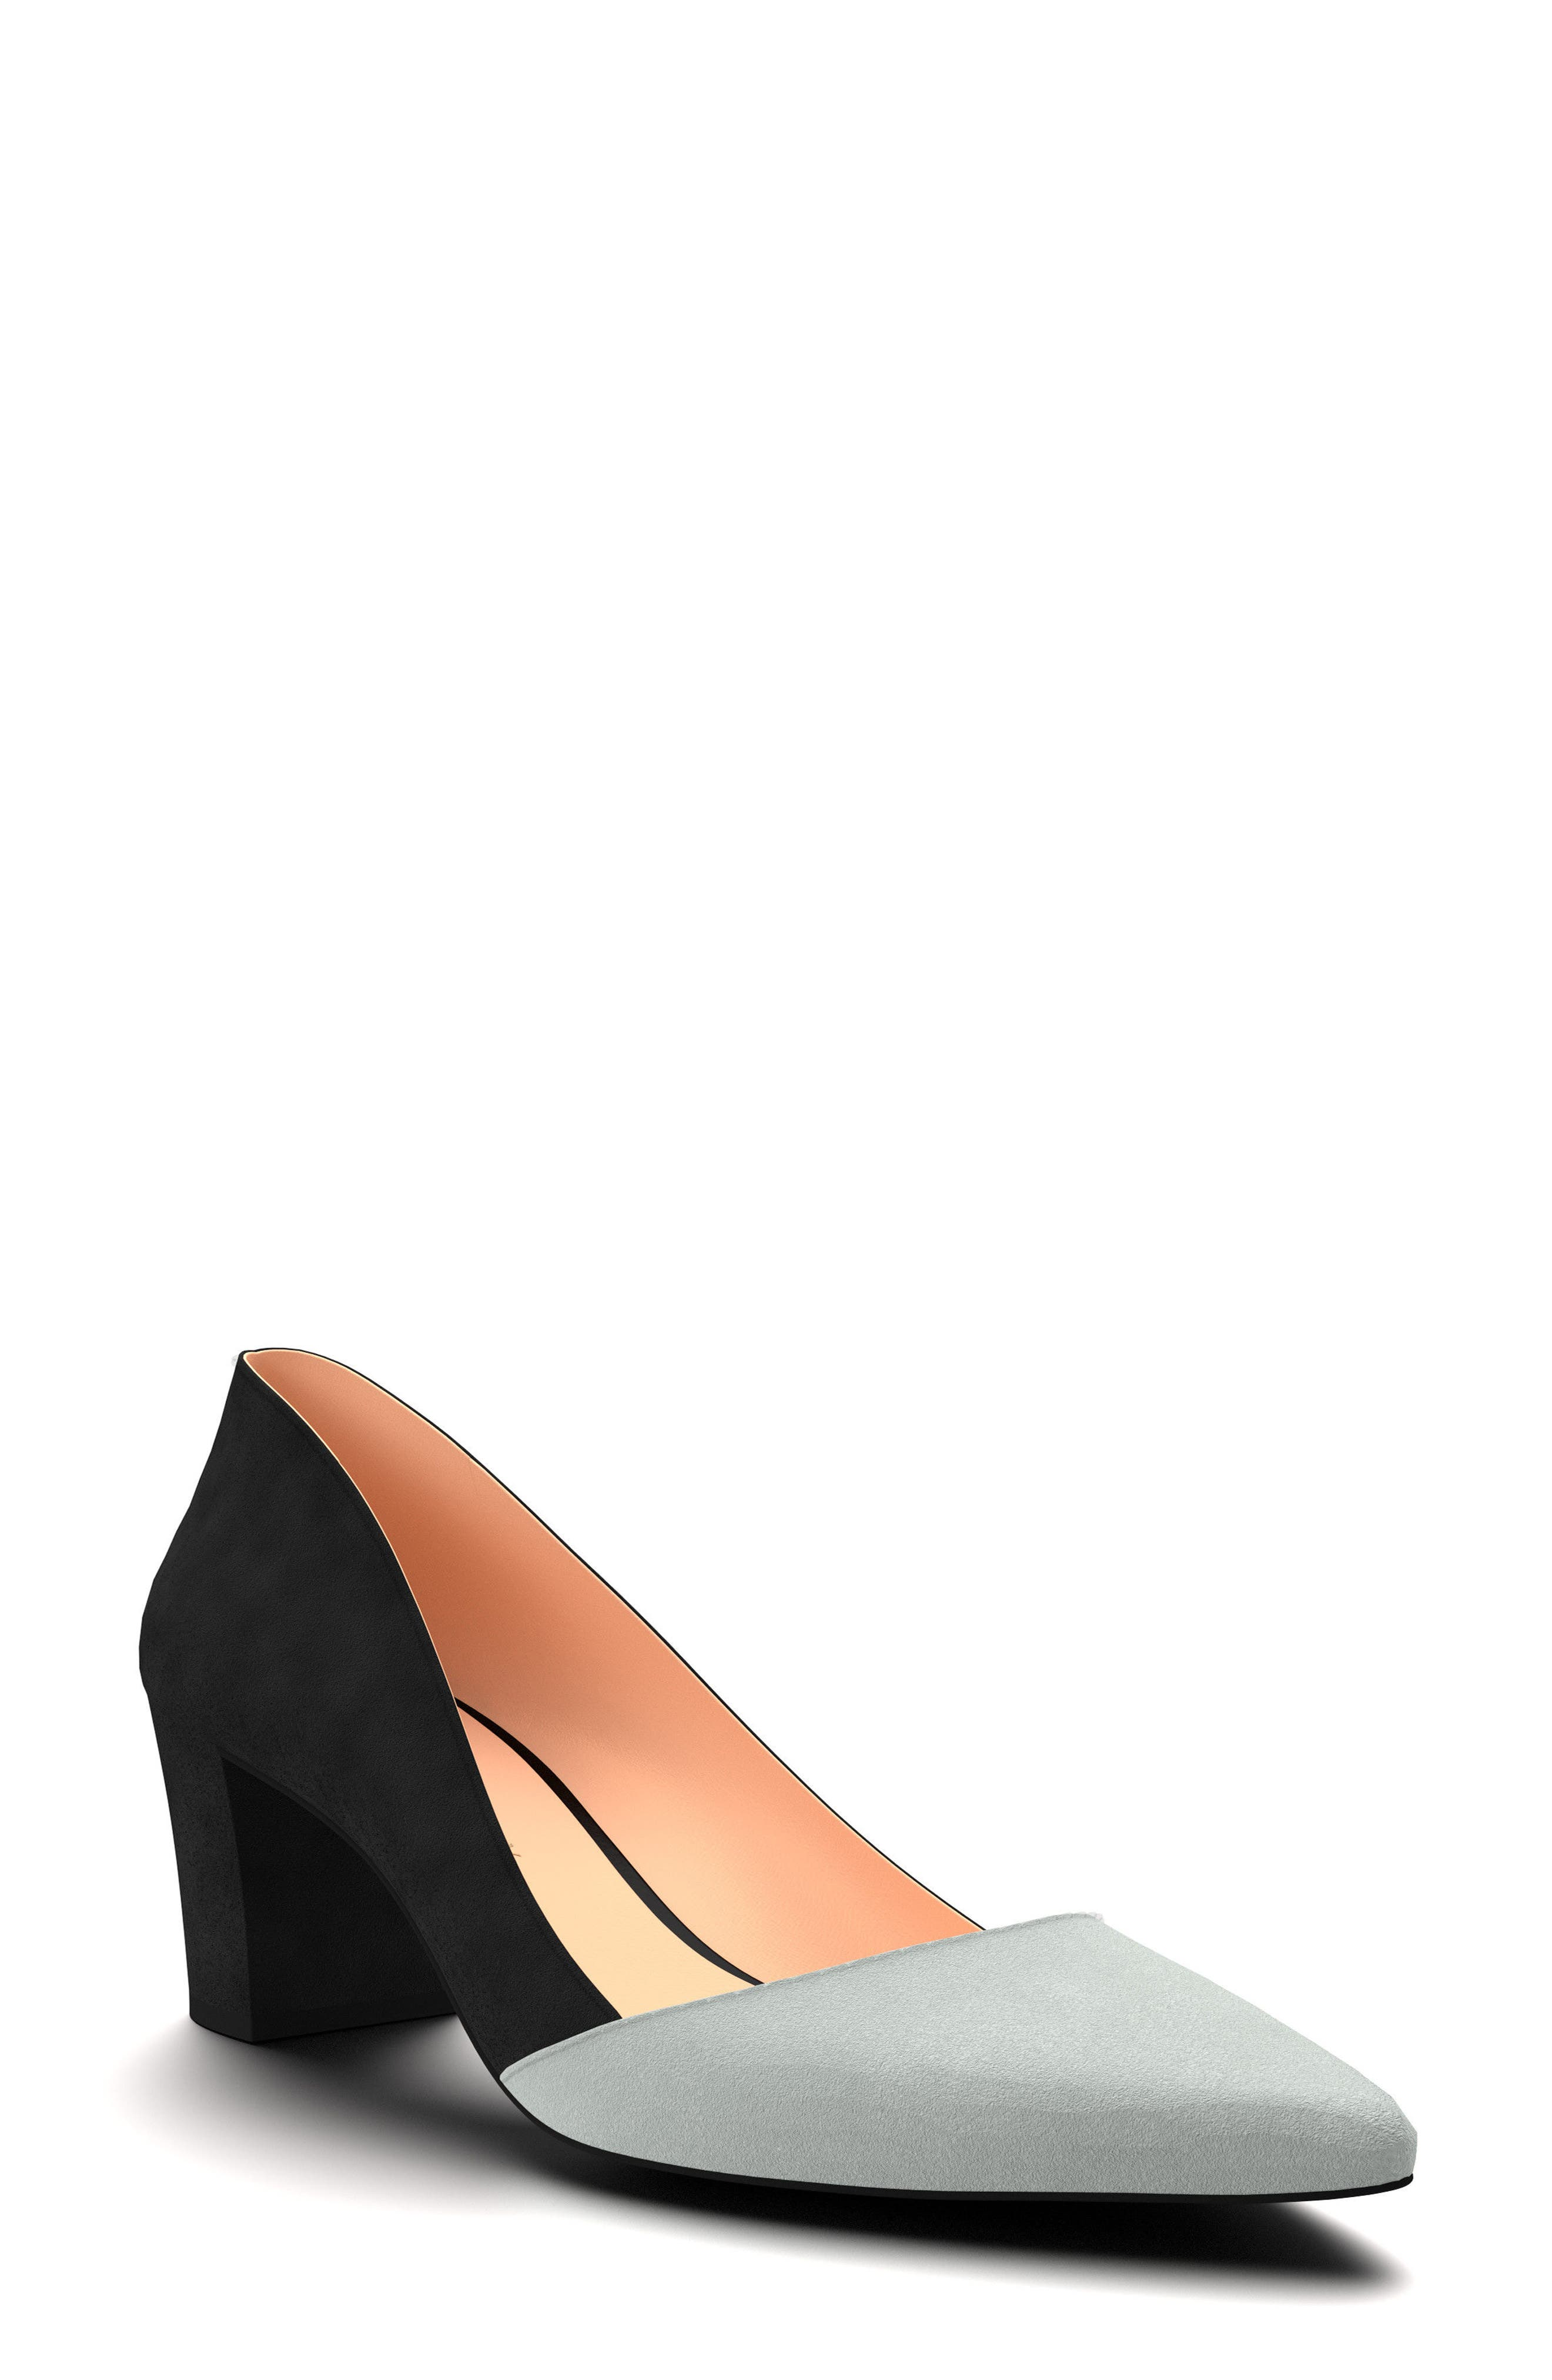 Shoes of Prey Colorblock Pump (Women)